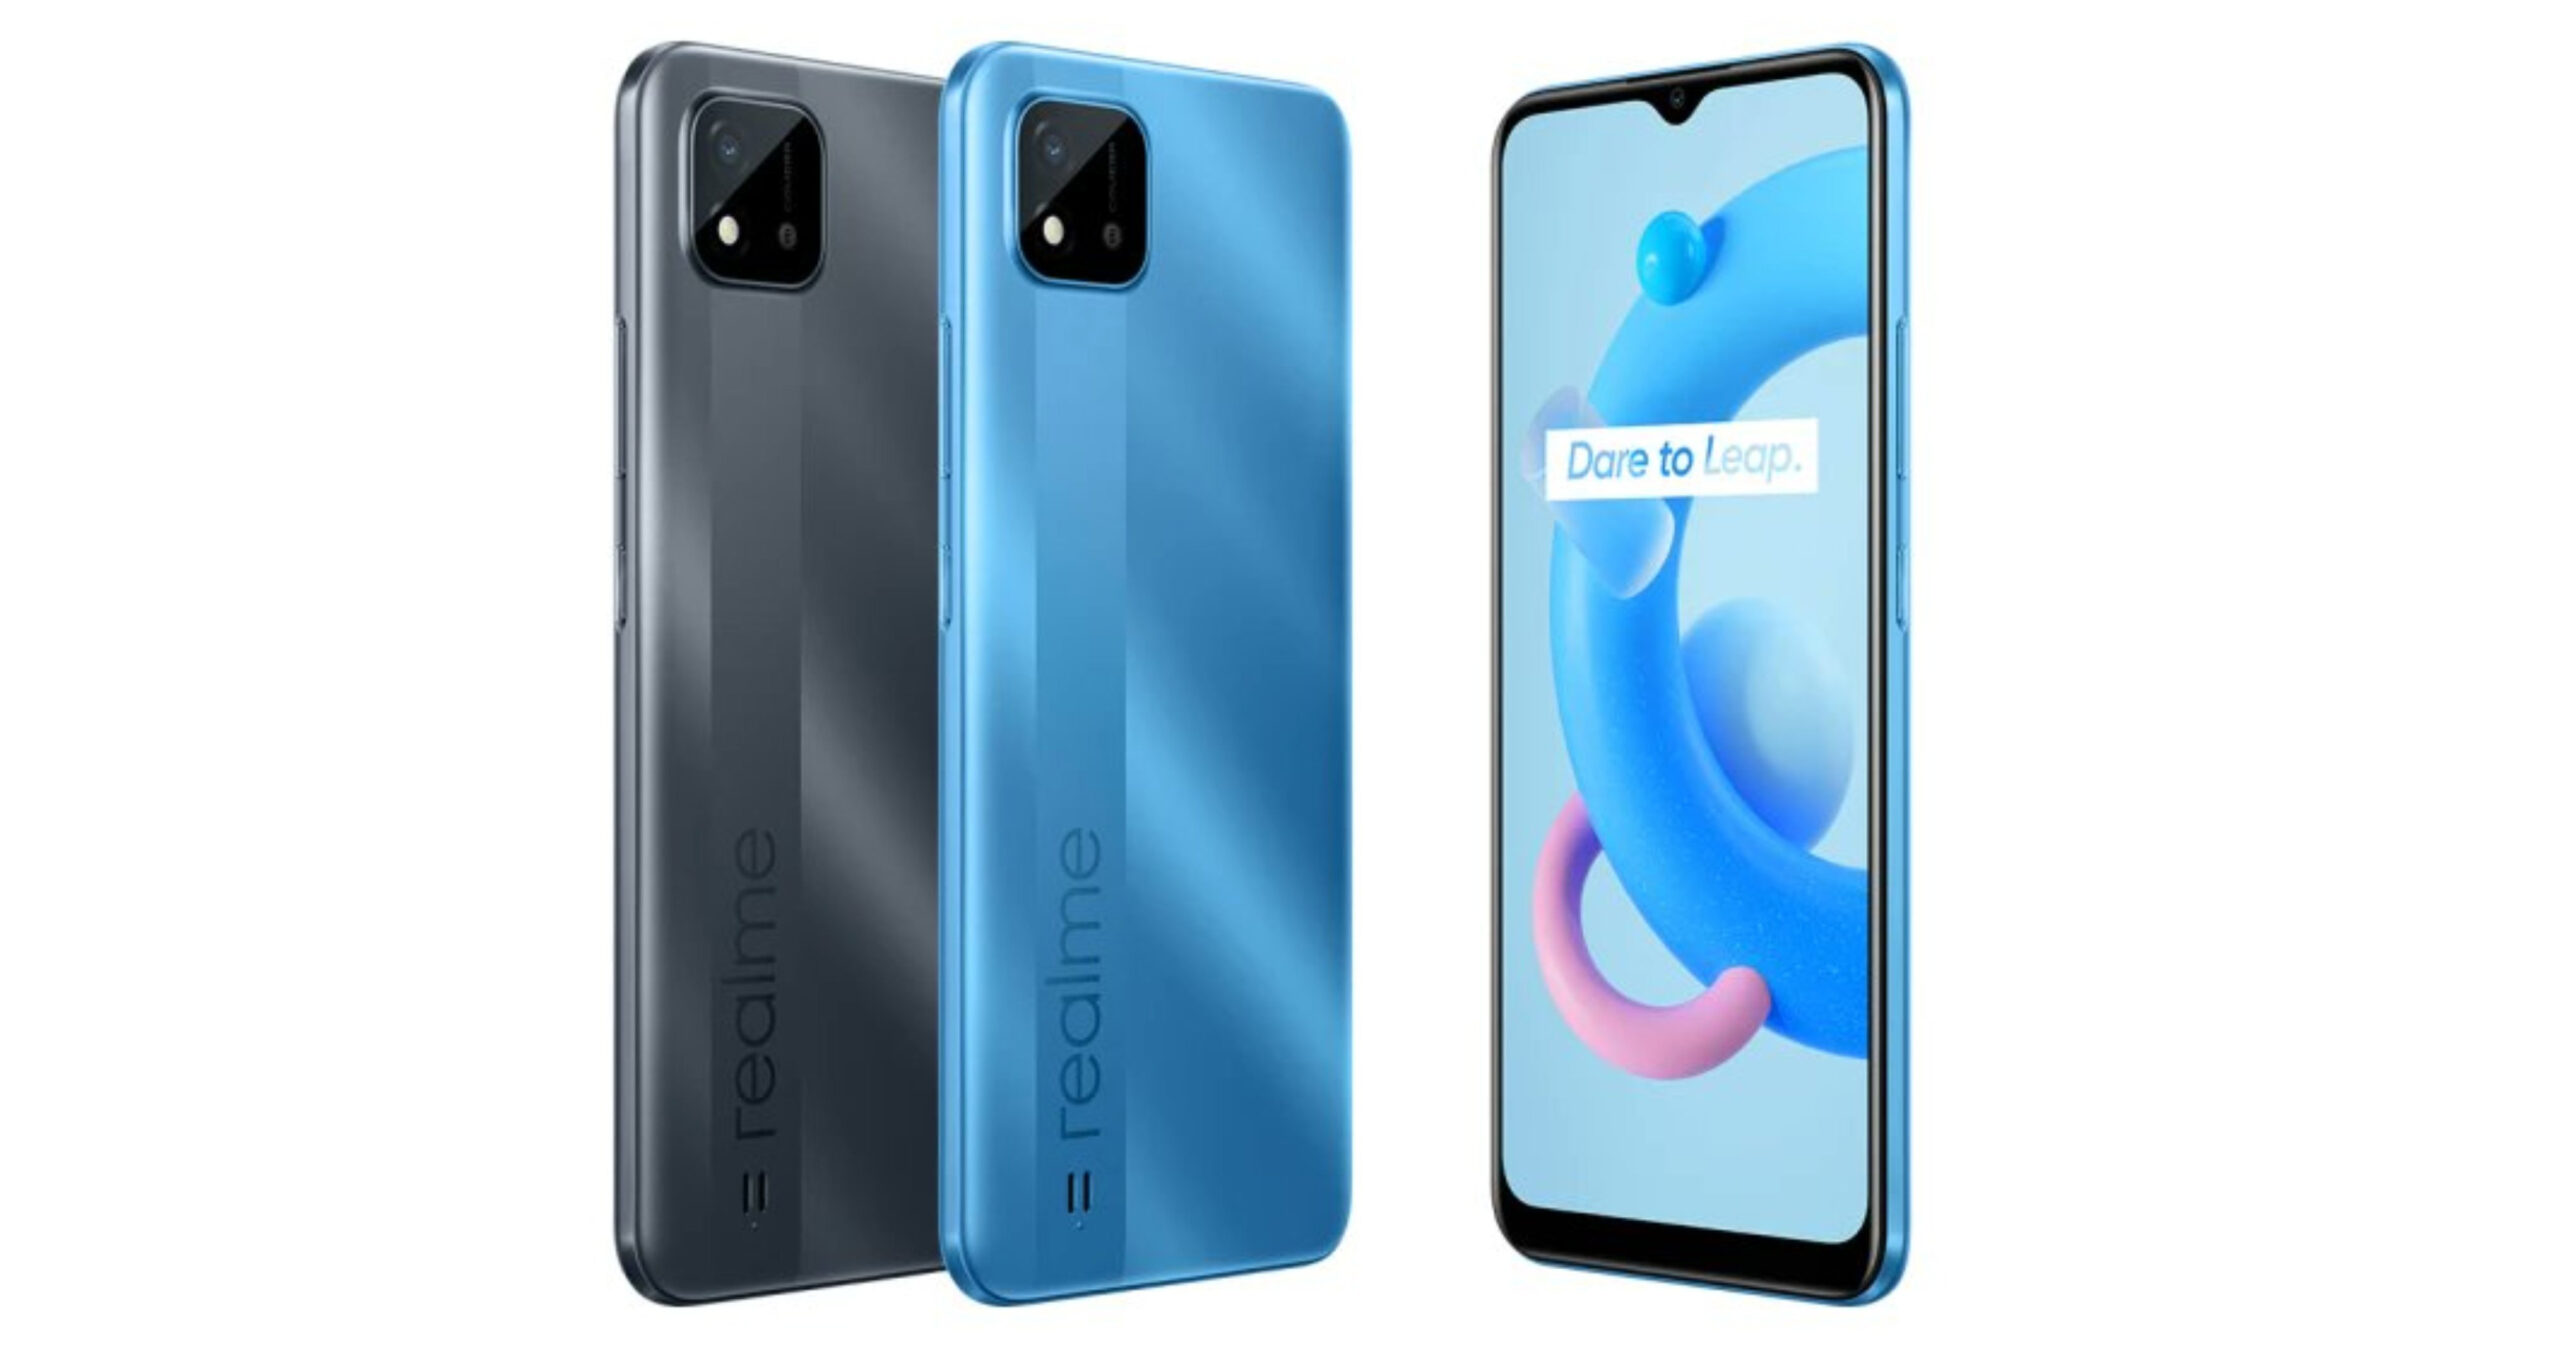 Realme C11 2021 launched with 6.5-inch display, 5,000mAh battery, and more: price, specifications